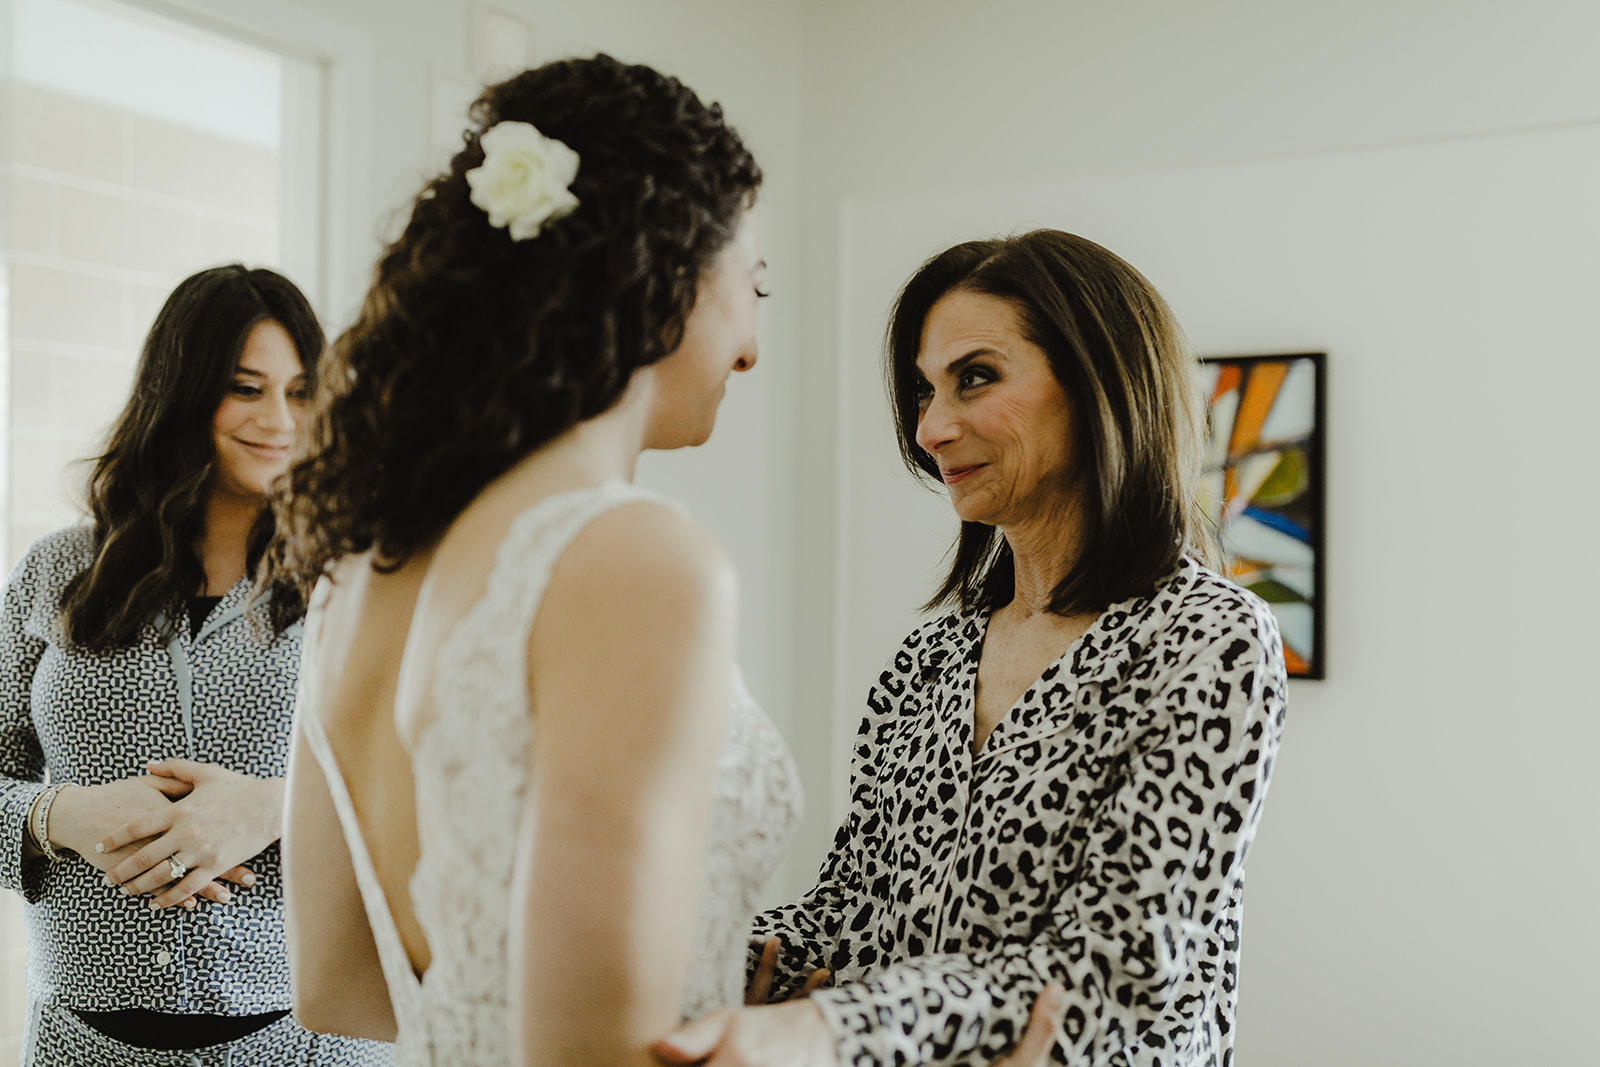 Mother of the bride in leopard pjs and bride's sister look on at the bride's finished look with pride, portrait by Jill DeVries Photography - How mom can help with wedding planning - Leah E. Moss Designs